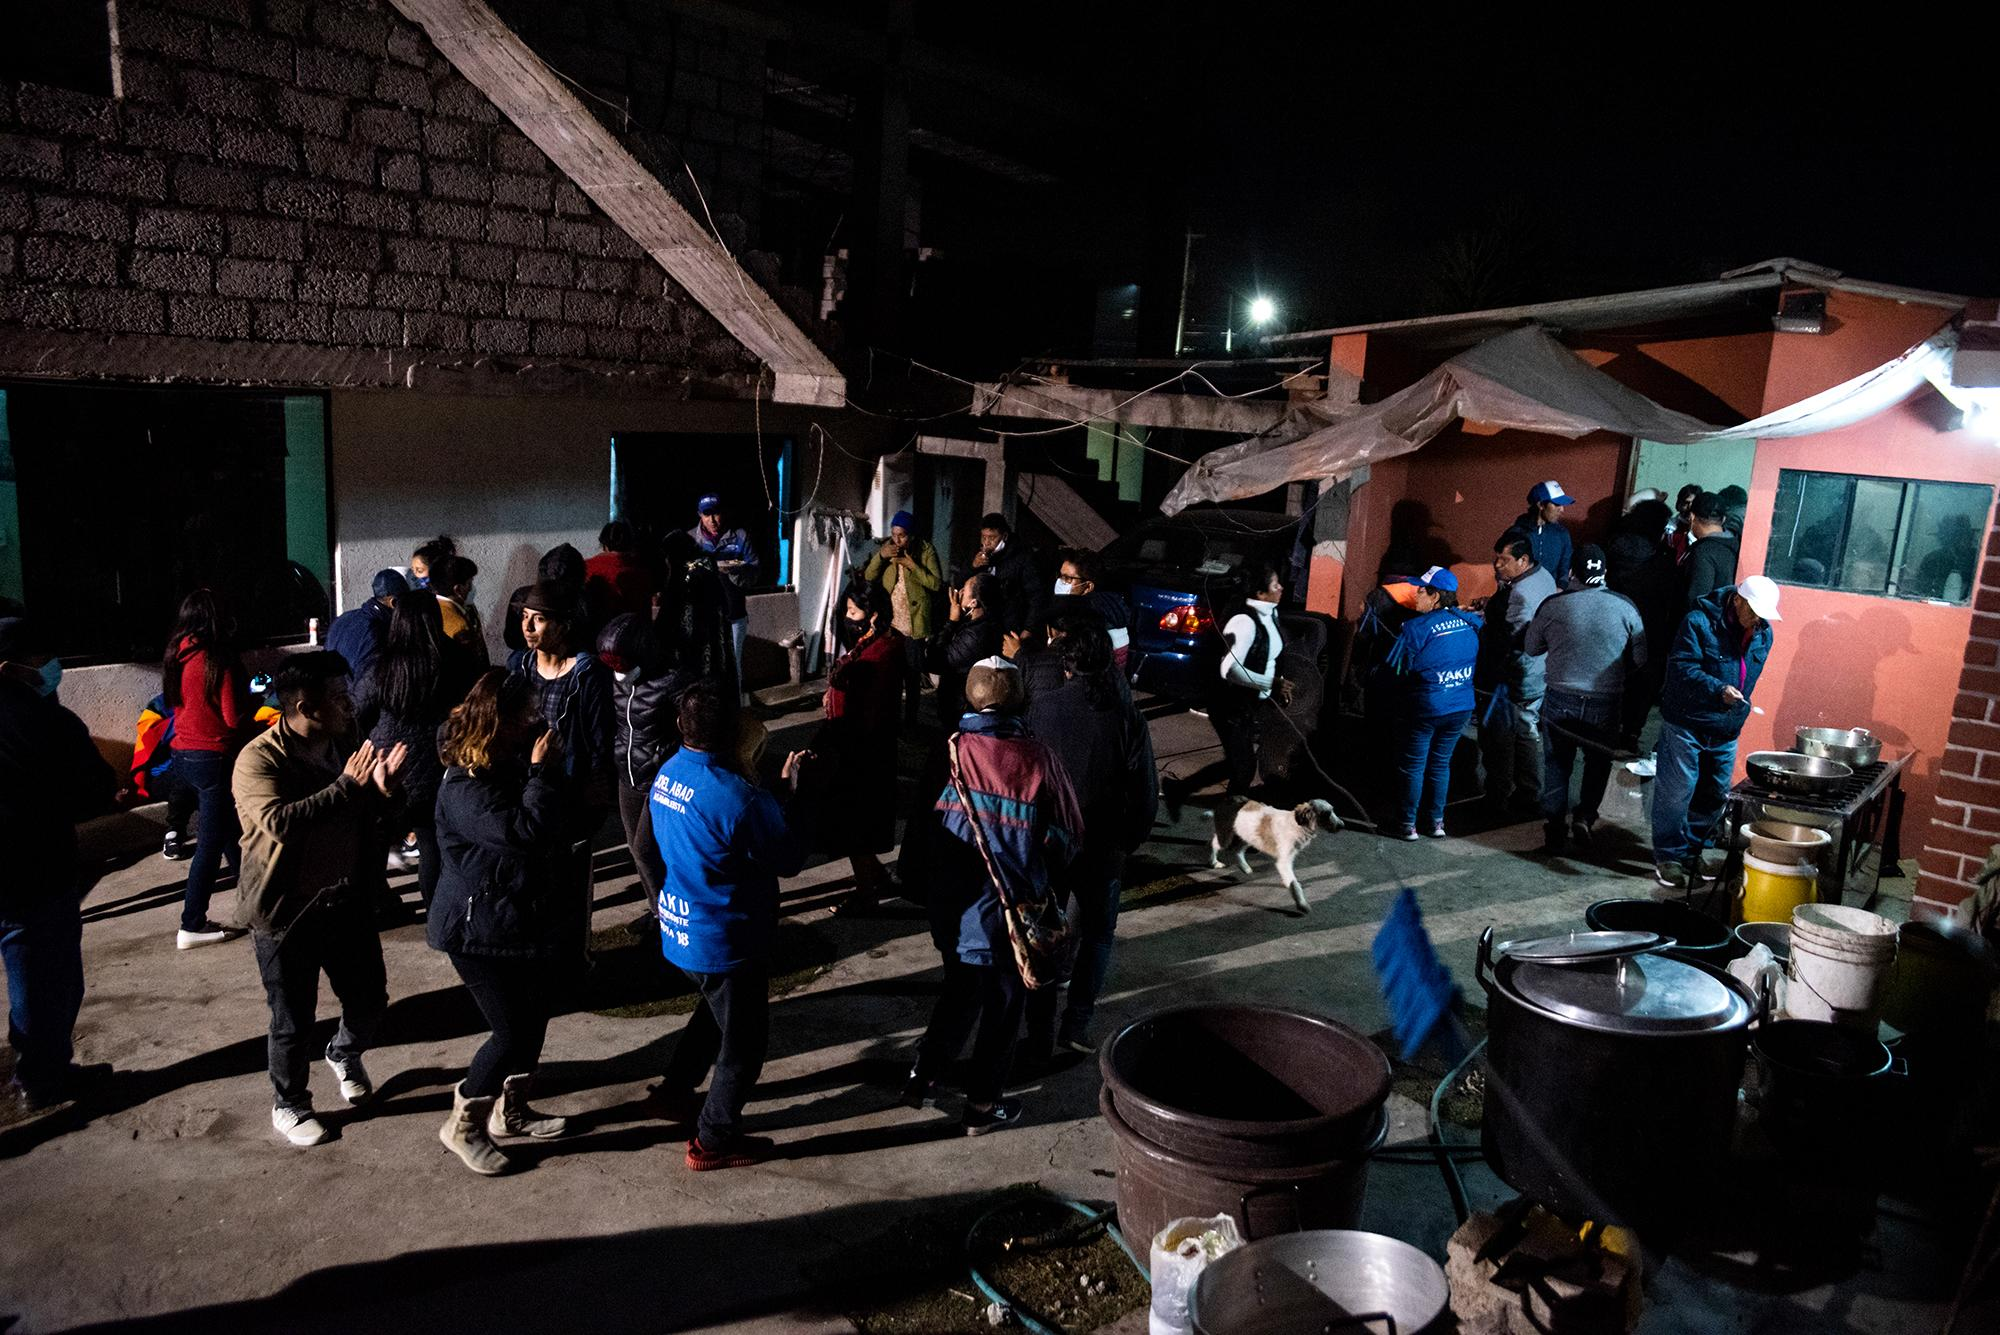 Participants of the National March for Democracy share a cultural night with food and music to celebrate their arrival in Tungurahua on the night of February 21, 2021.Tungurahua, Ecuador. Johis Alarcón for The New York Times.